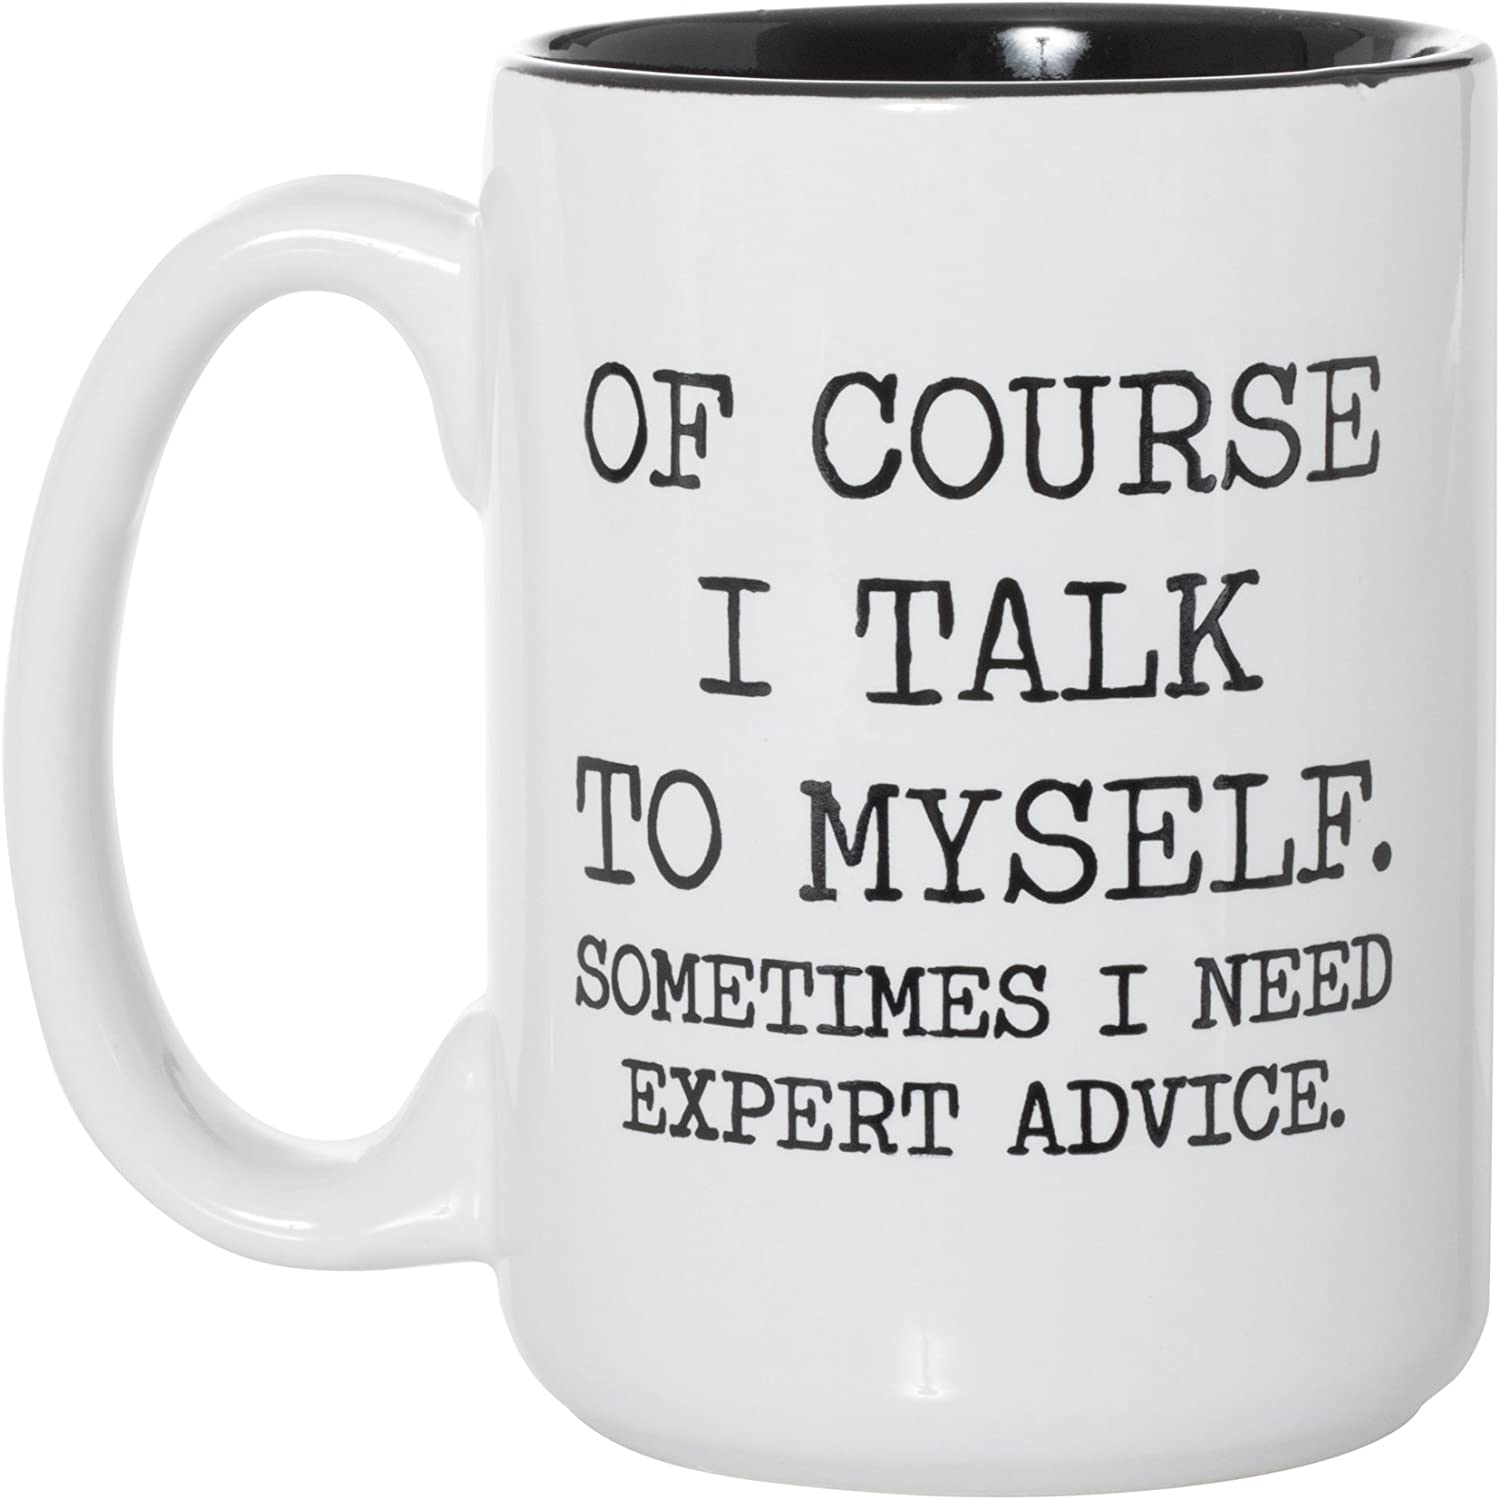 Of Course I Talk To Myself Sometimes I Need Expert Advice - Funny Coworker Boss Husband Wife Boyfriend Girlfriend Gift - 15oz Deluxe Double-Sided Coffee Tea Mug